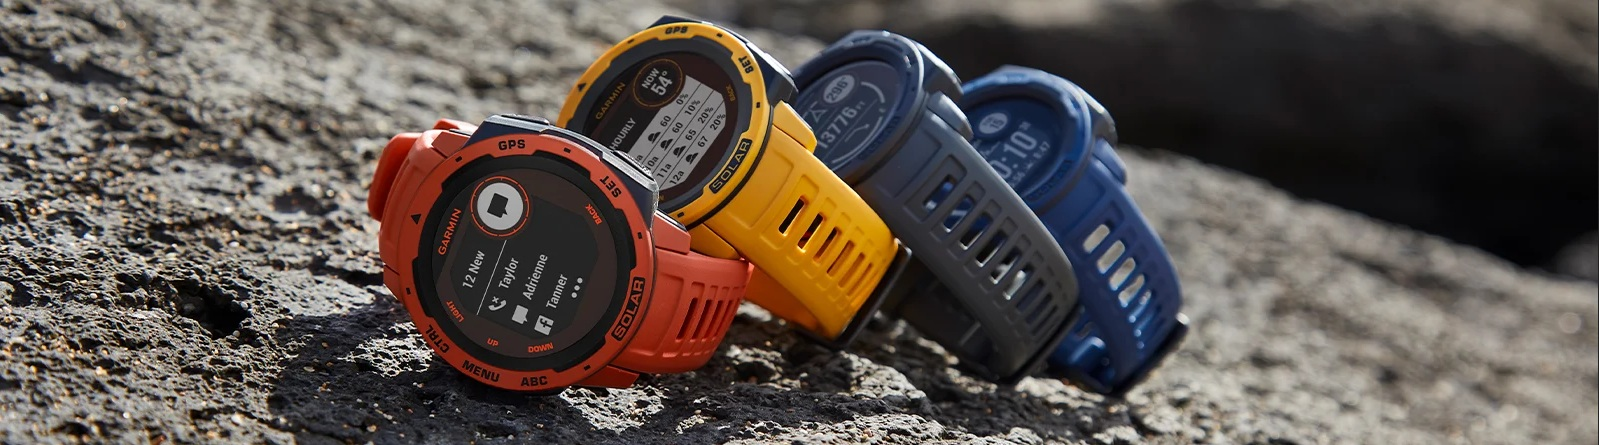 garmin-instinct-solar-color-01